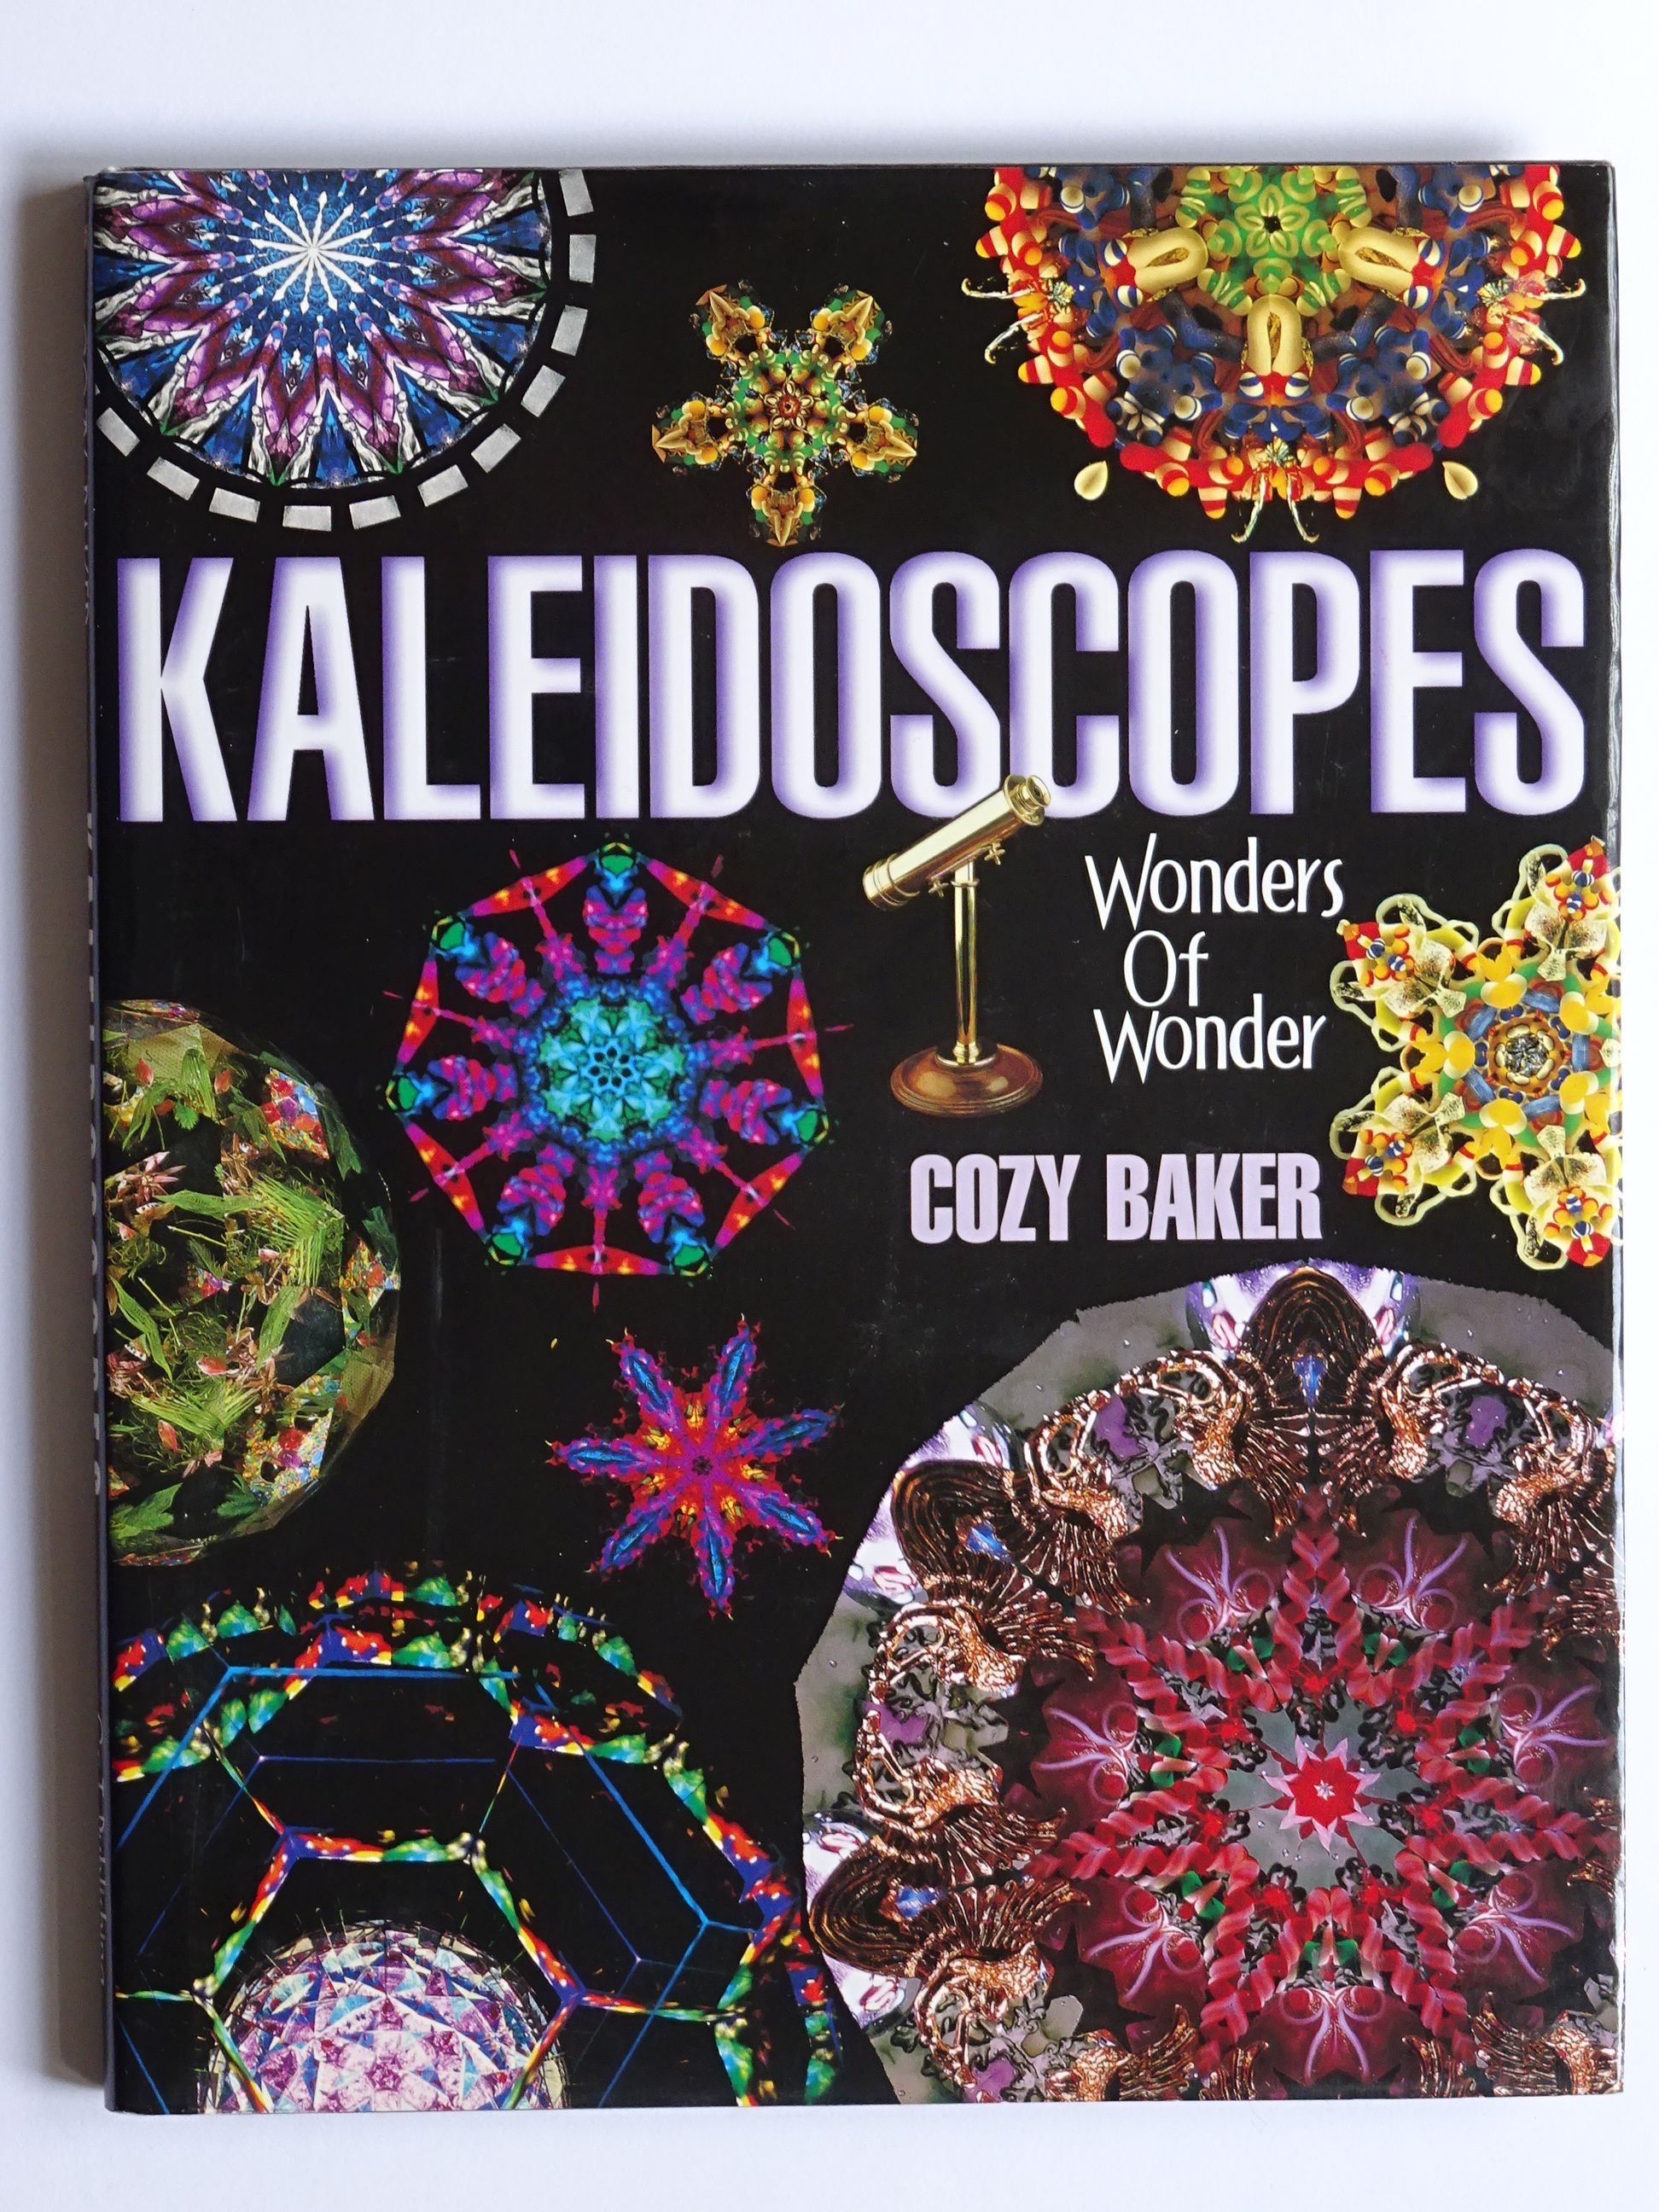 Baker, Cozy - Kaleidoscopes wonders of Wonder